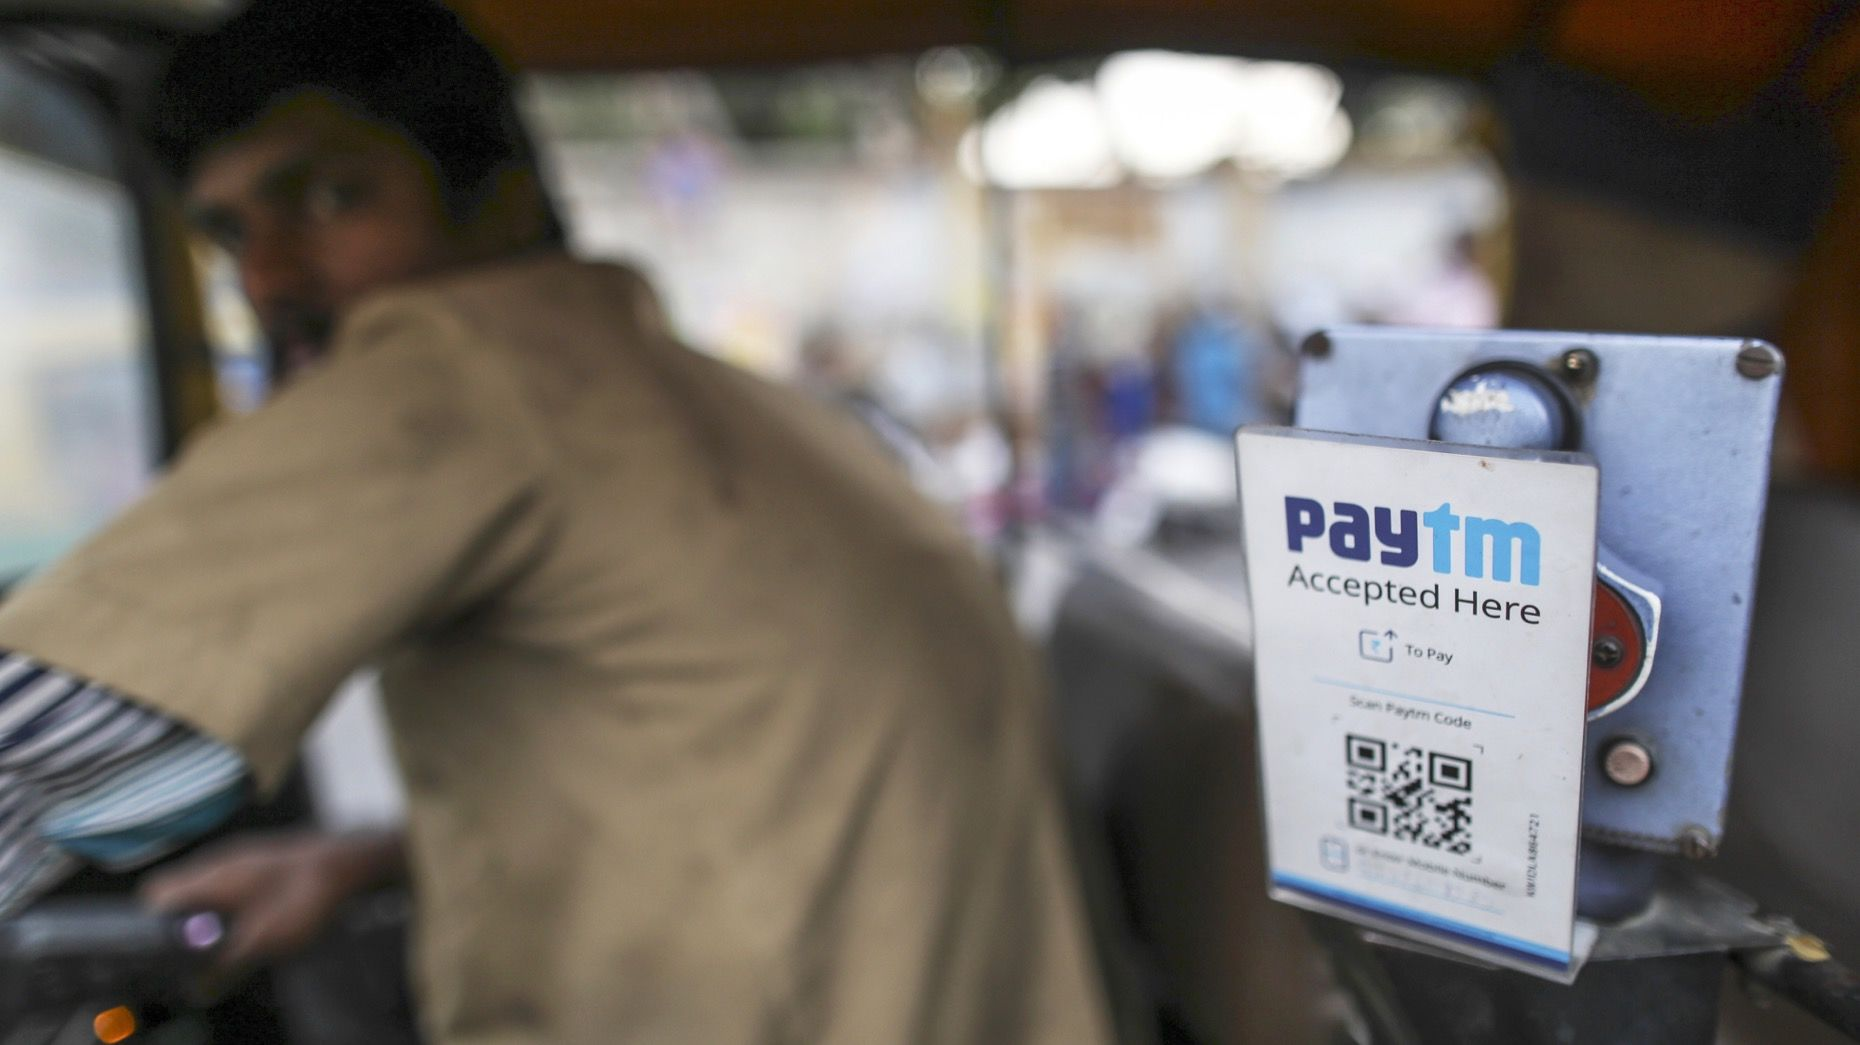 A driver in Bengaluru, India, who accepts Paytm. Photo by Bloomberg.